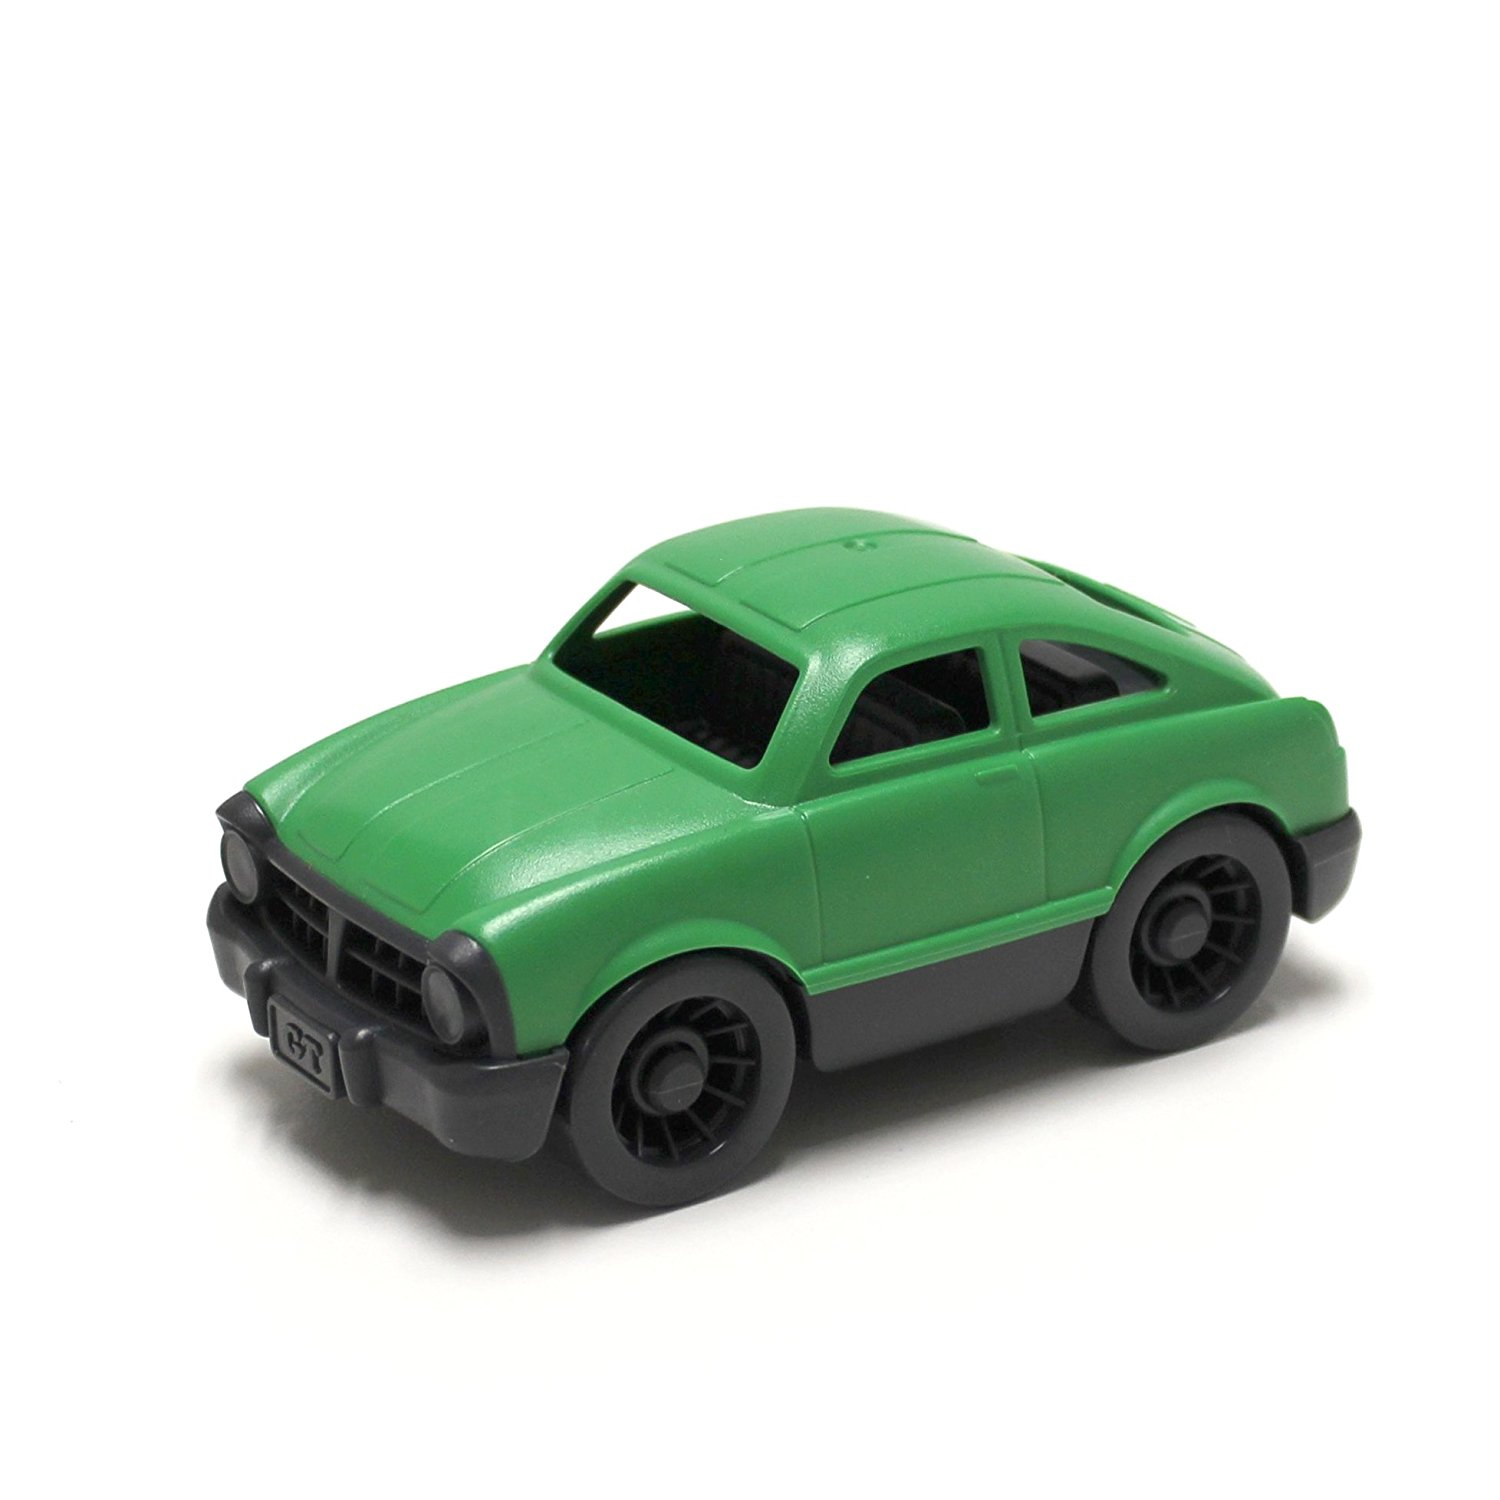 Green toy car photo